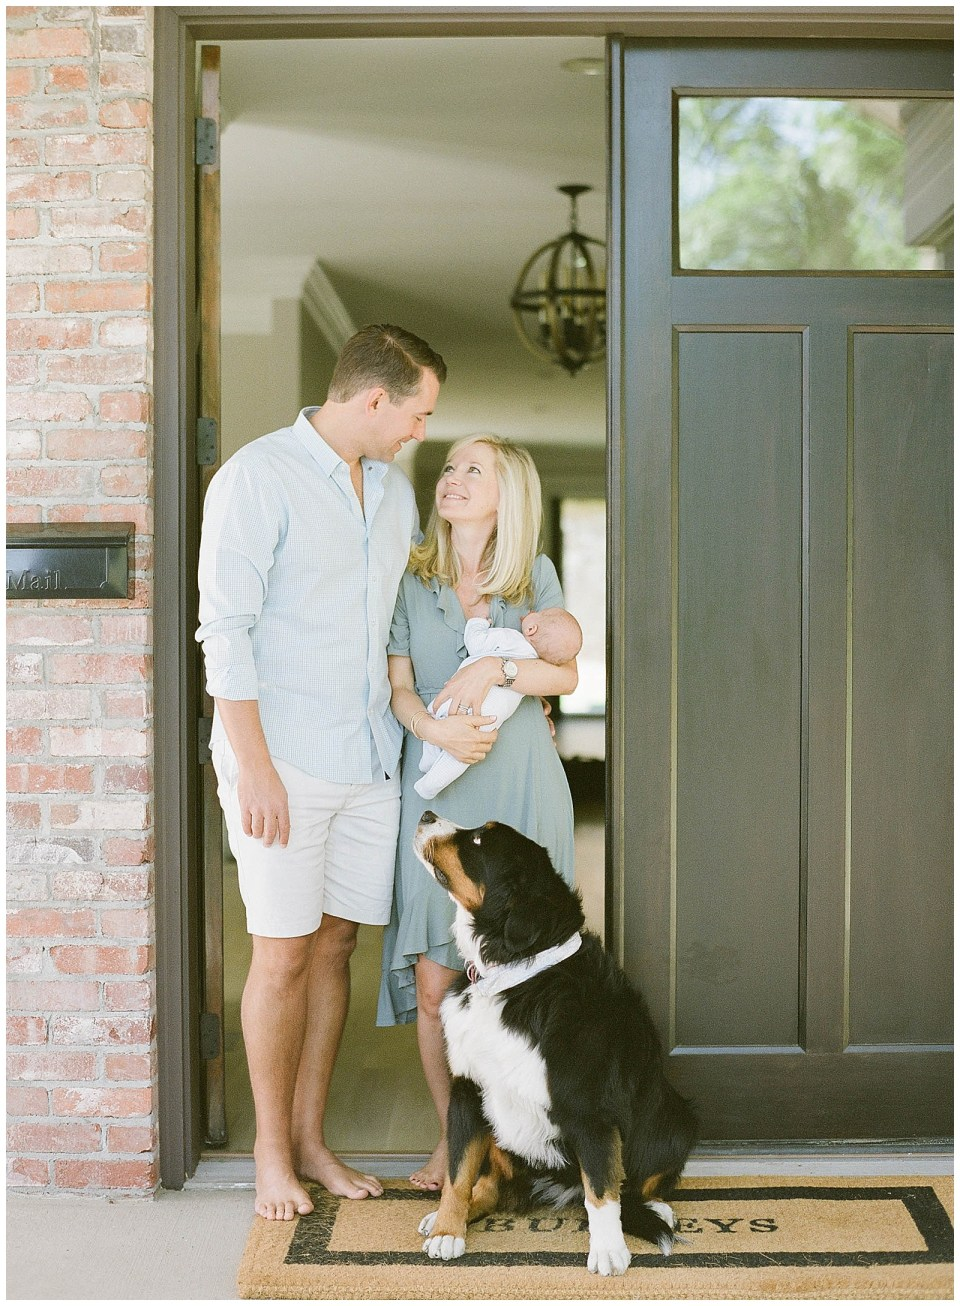 Denver family photographer - family holding new baby outside front door with dog portraits